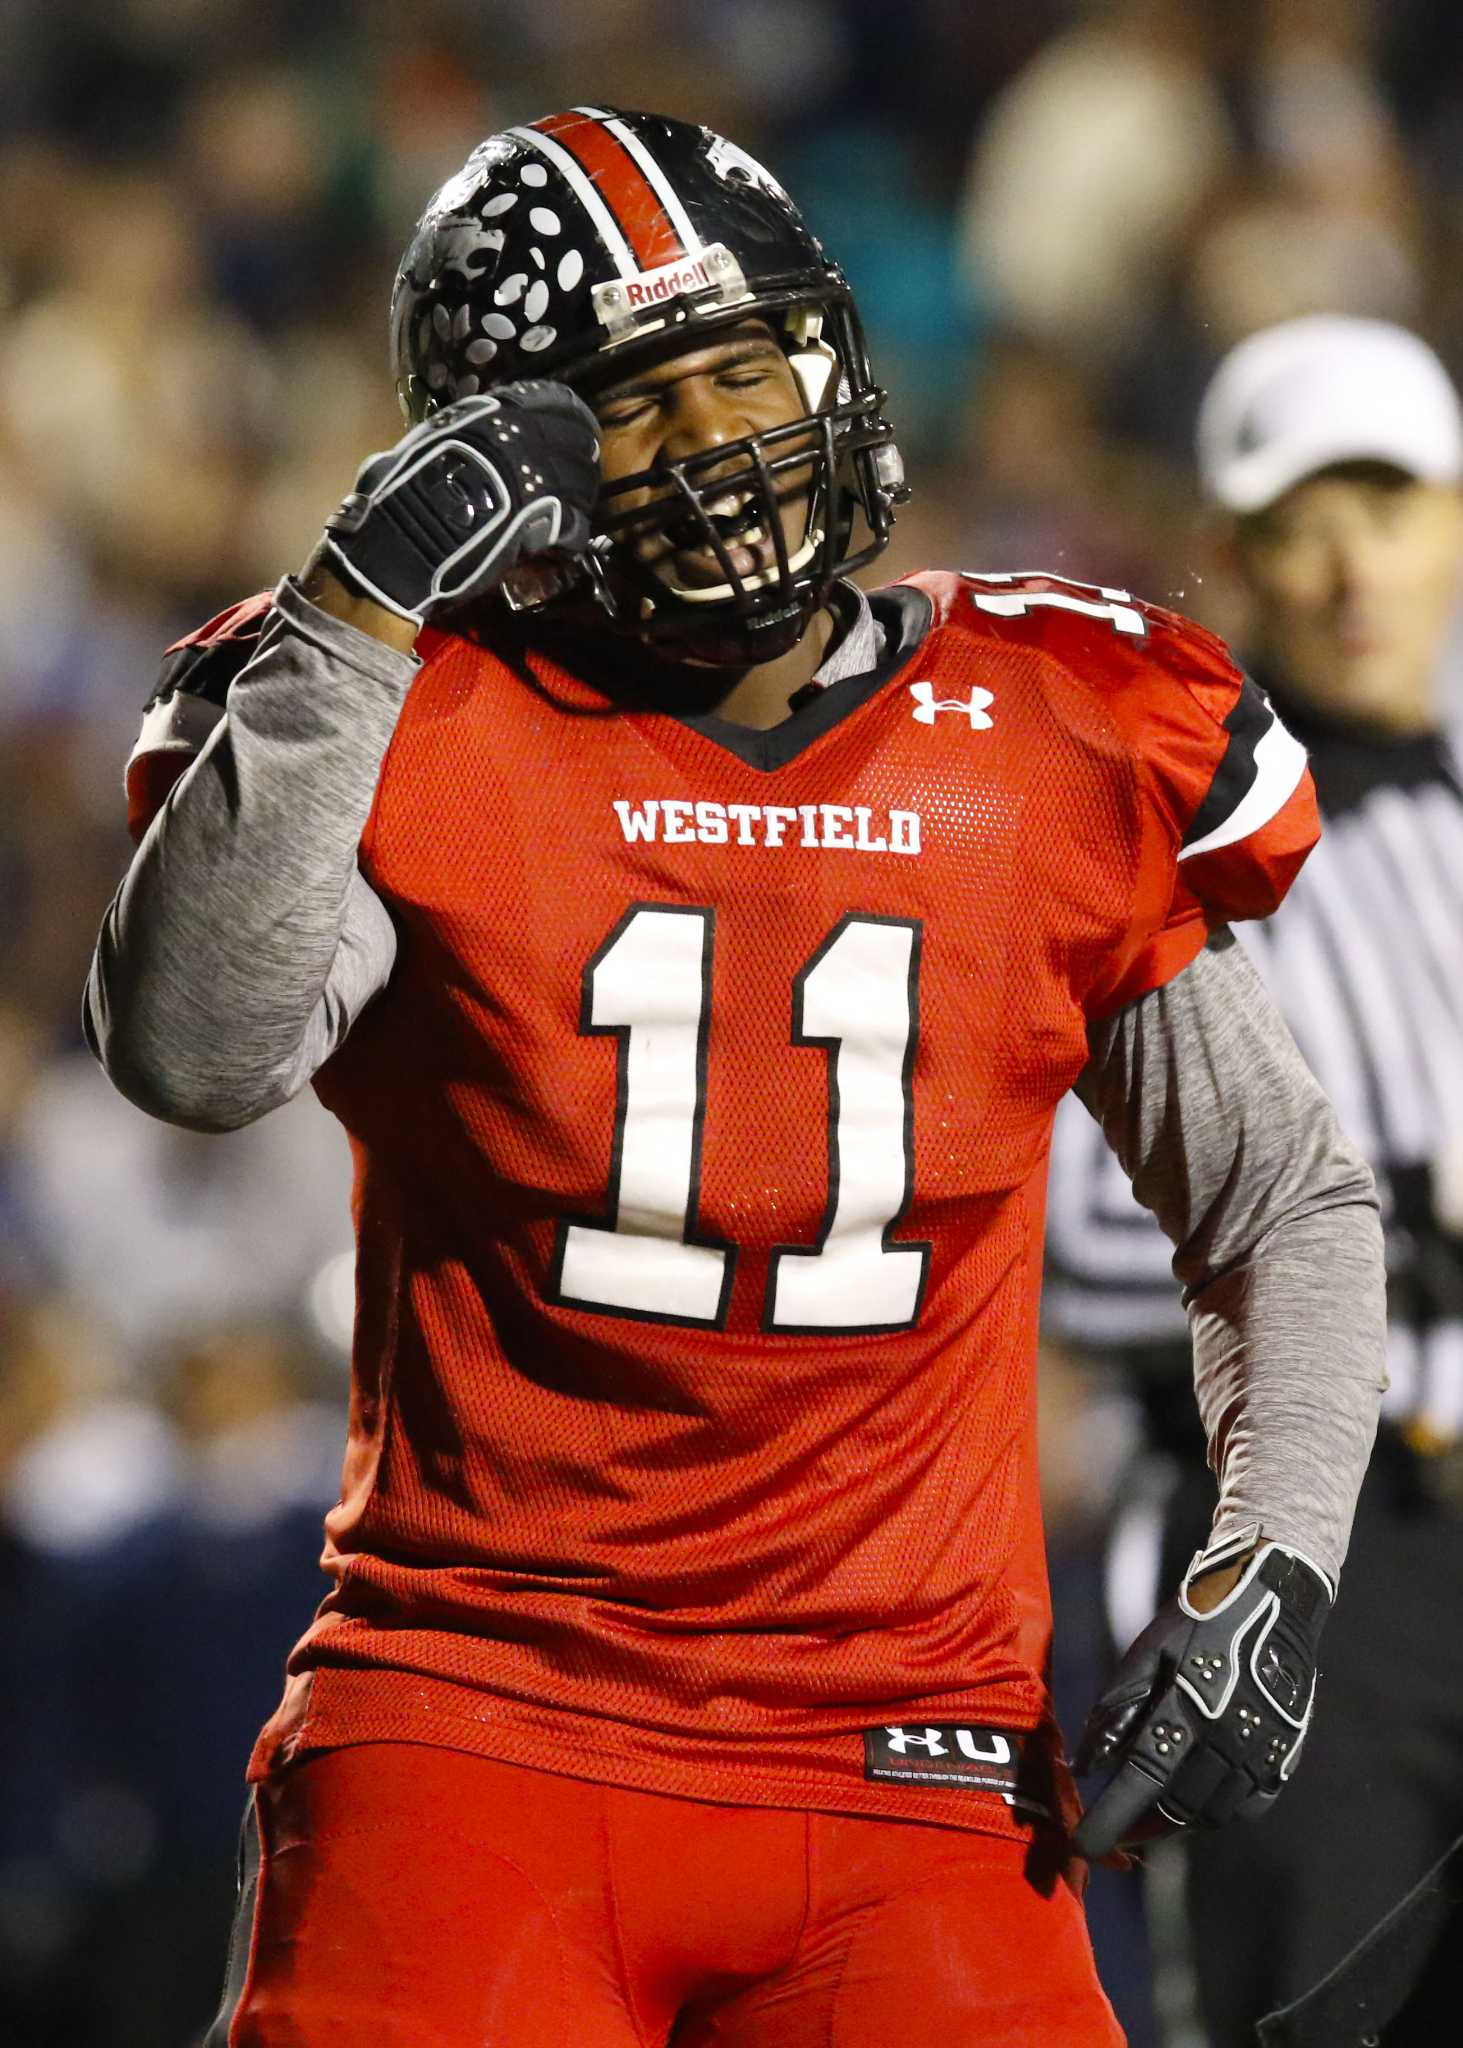 http://www.chron.com/neighborhood/spring/sports/article/Ed-Oliver-s-historic-freshman-season-was-a-11944219.php